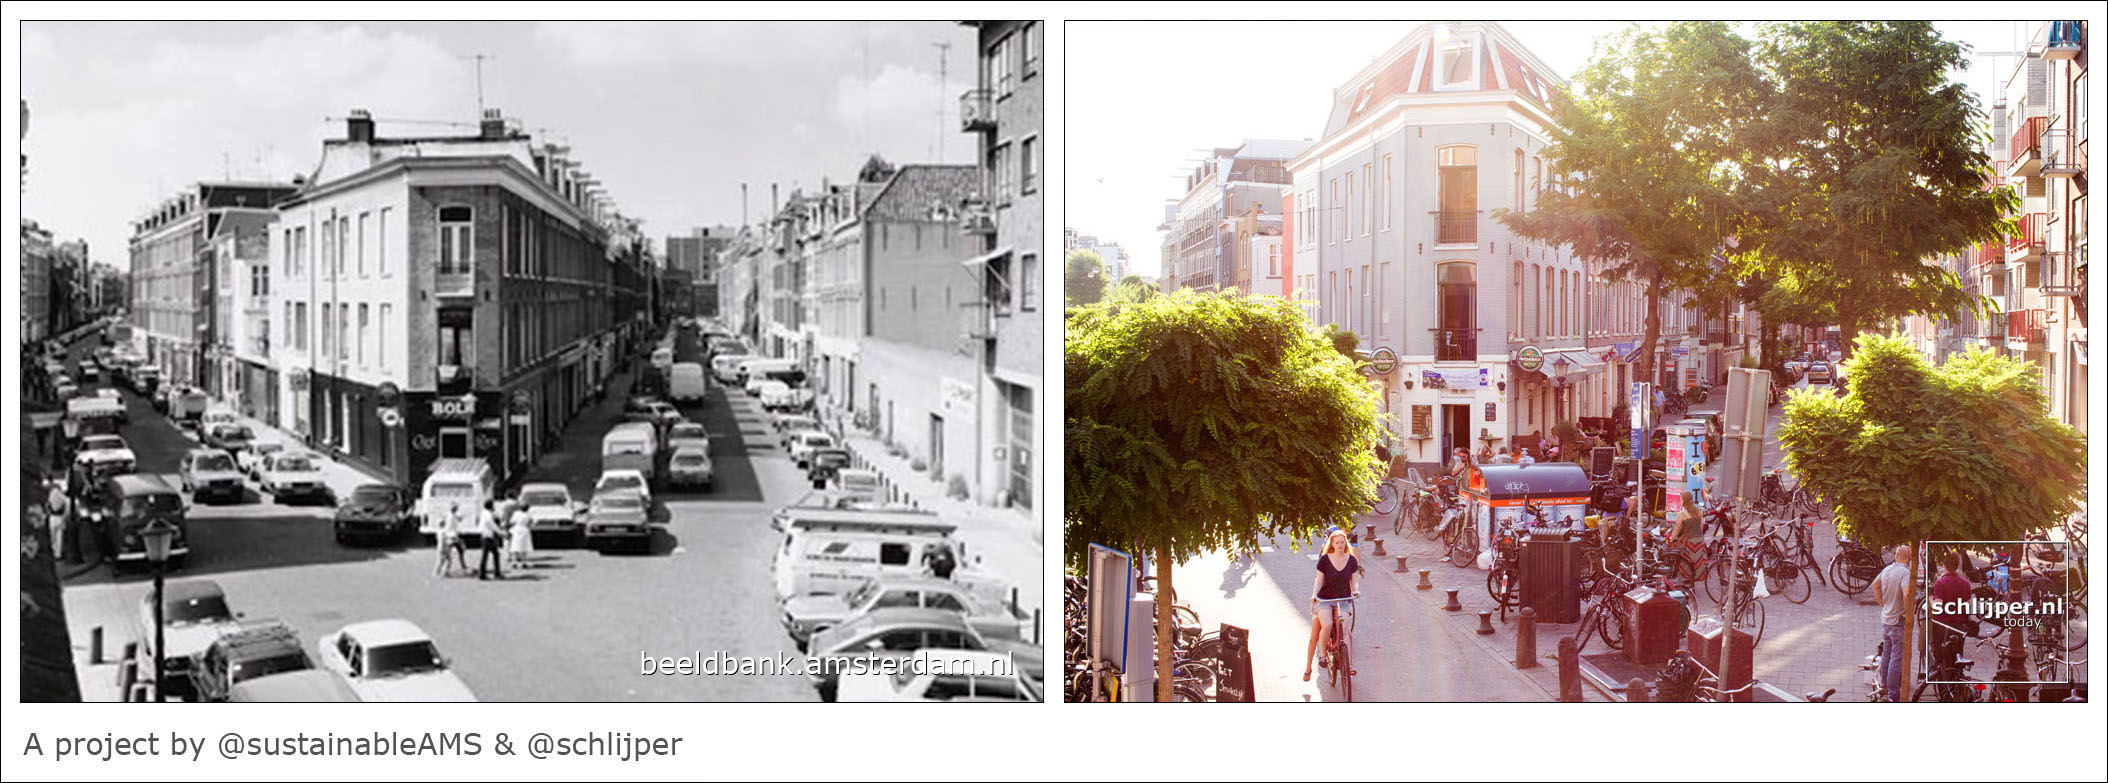 gerard doustraat comparison